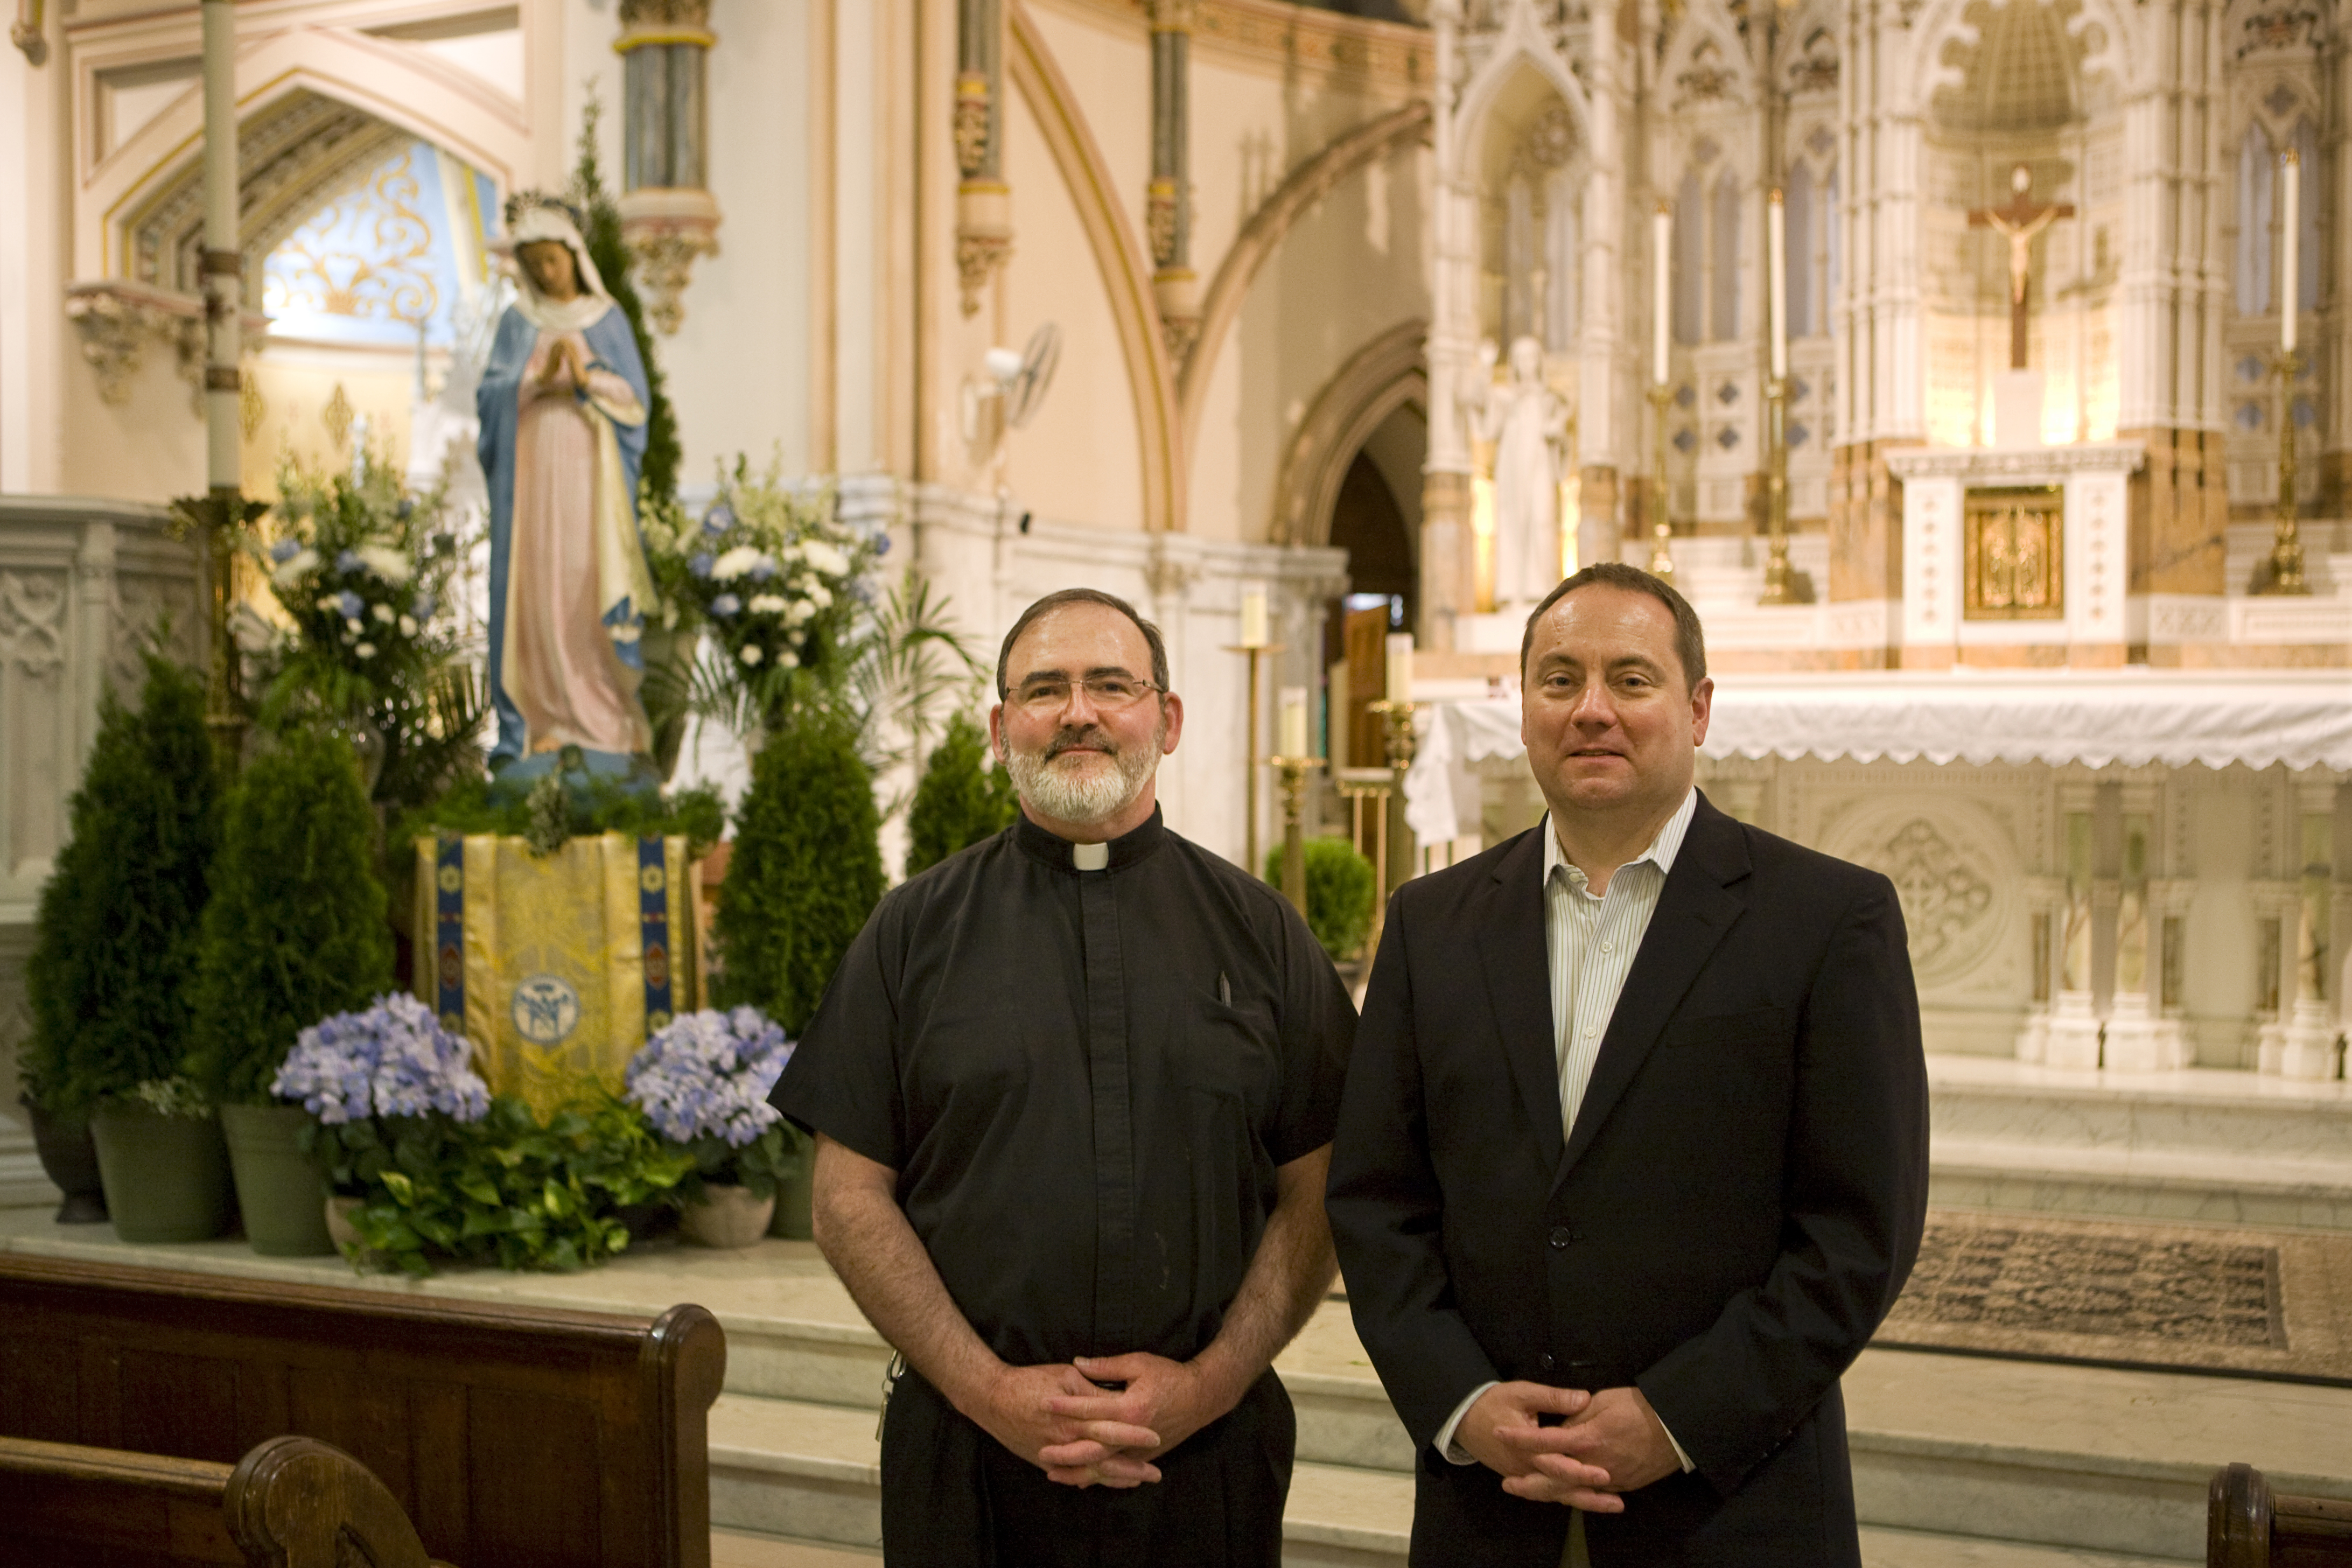 Father Kevin Lawrence (left) and Rich Van Fossen in the sanctuary of Saint John the Baptist, 2015 | Credit: Bradley Maule